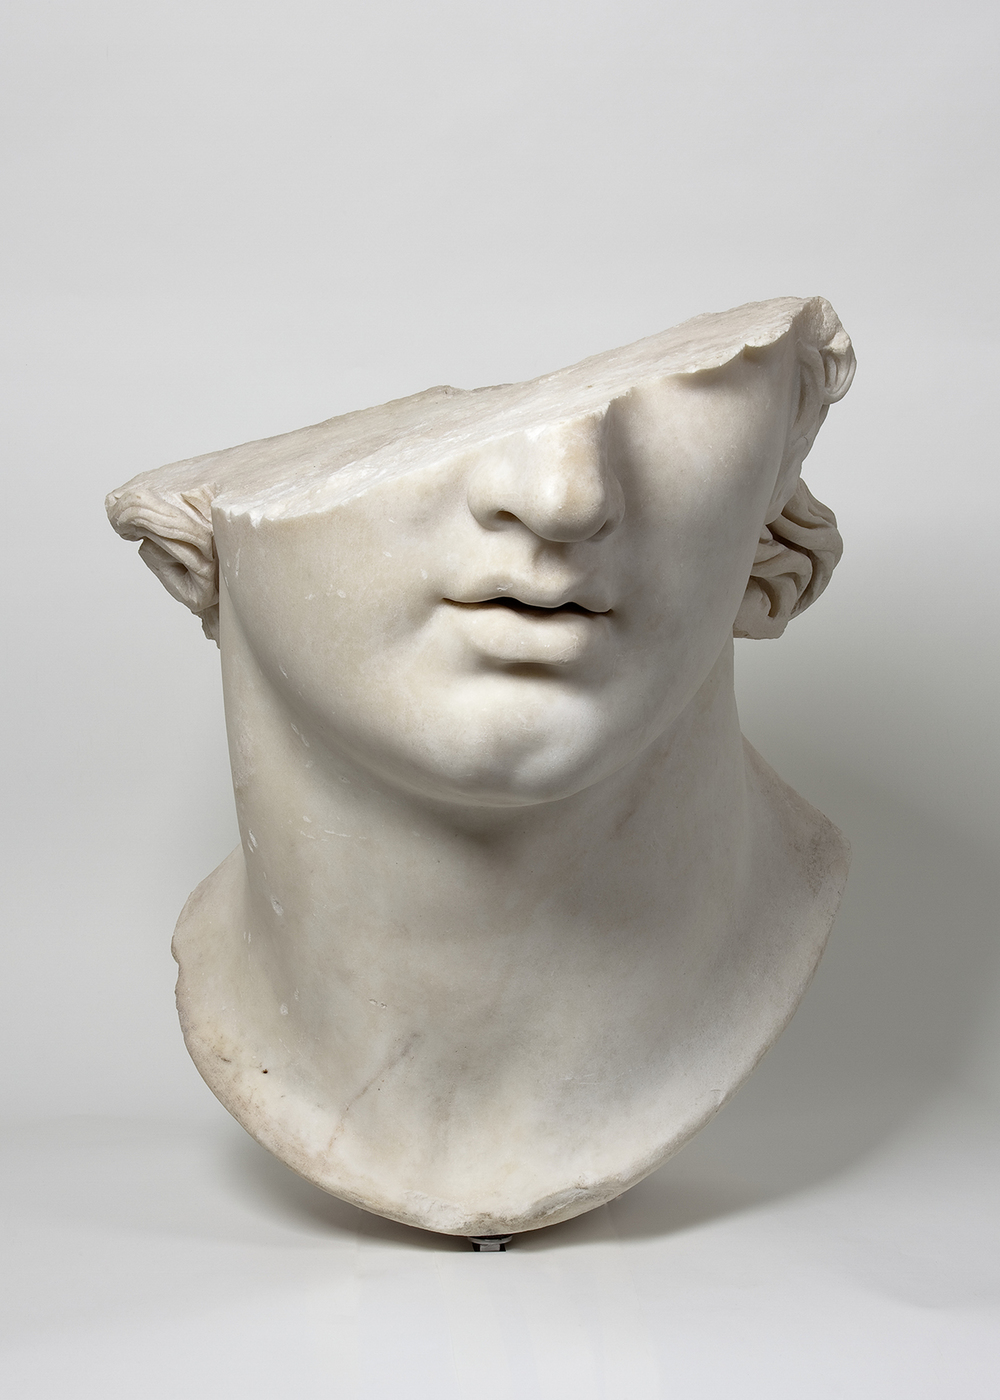 """Fragmentary Colossal Head of a Youth,"" Greek, Hellenistic period, 2nd century B.C., marble. Antikensammlung, Staatliche Museen zu Berlin (AvP VII 283). Images © SMB / Antikensammlung."